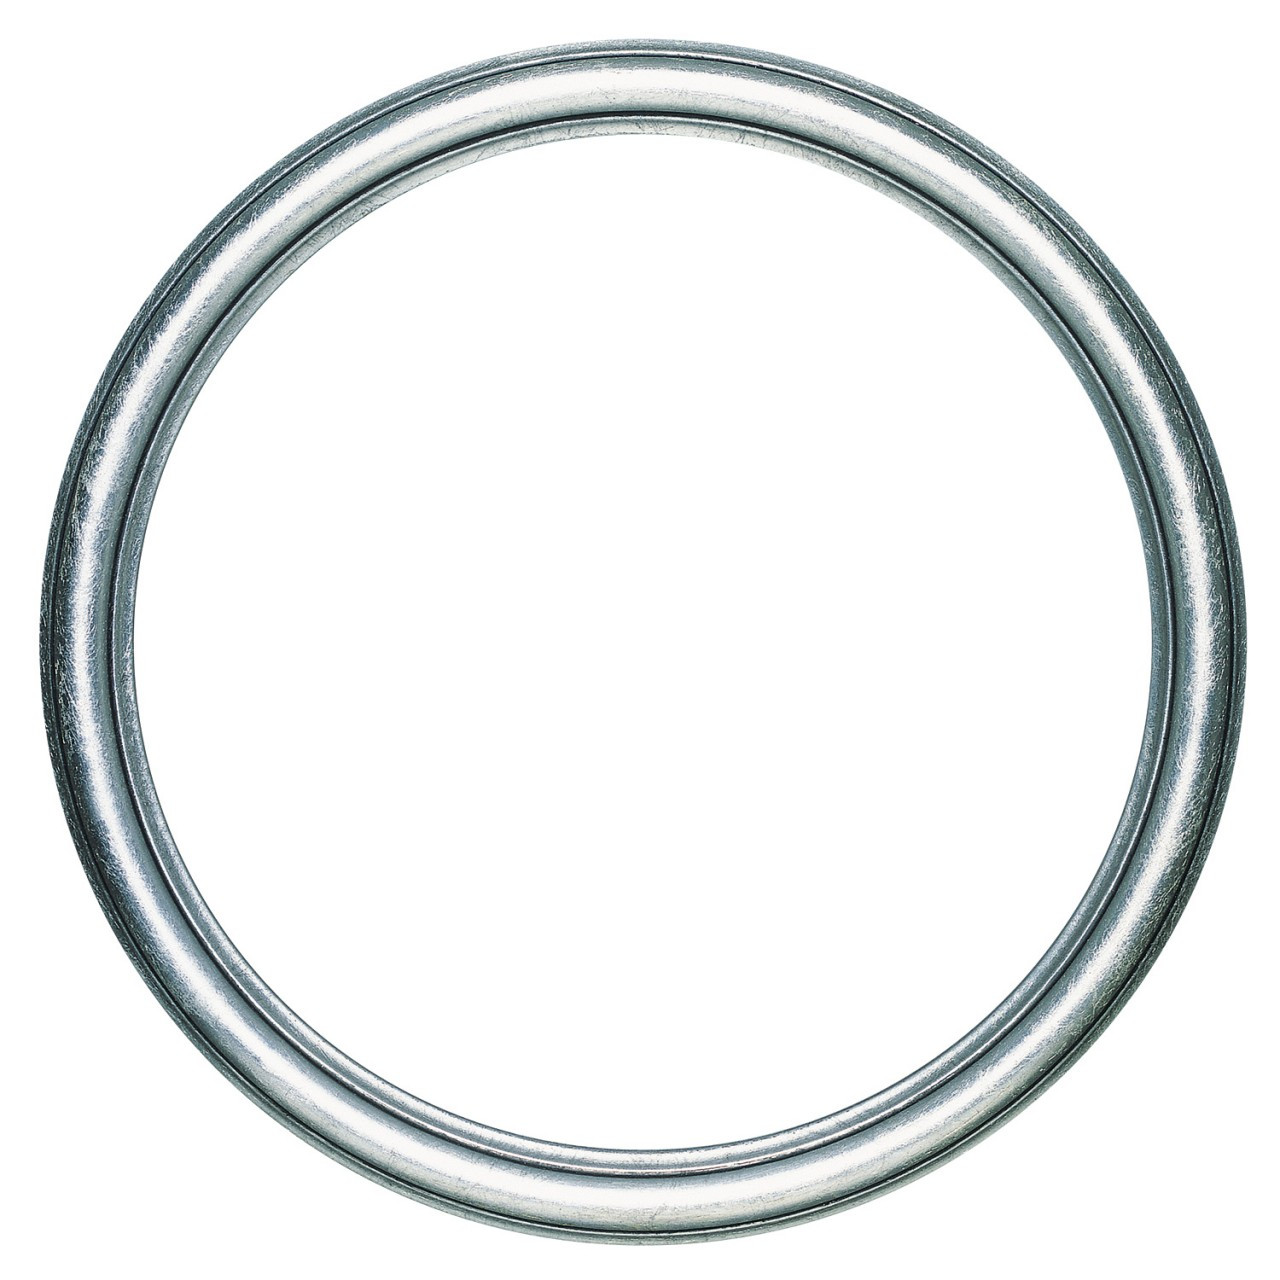 6f902d837648 Round Frame in Silver Leaf Finish with Black Antique